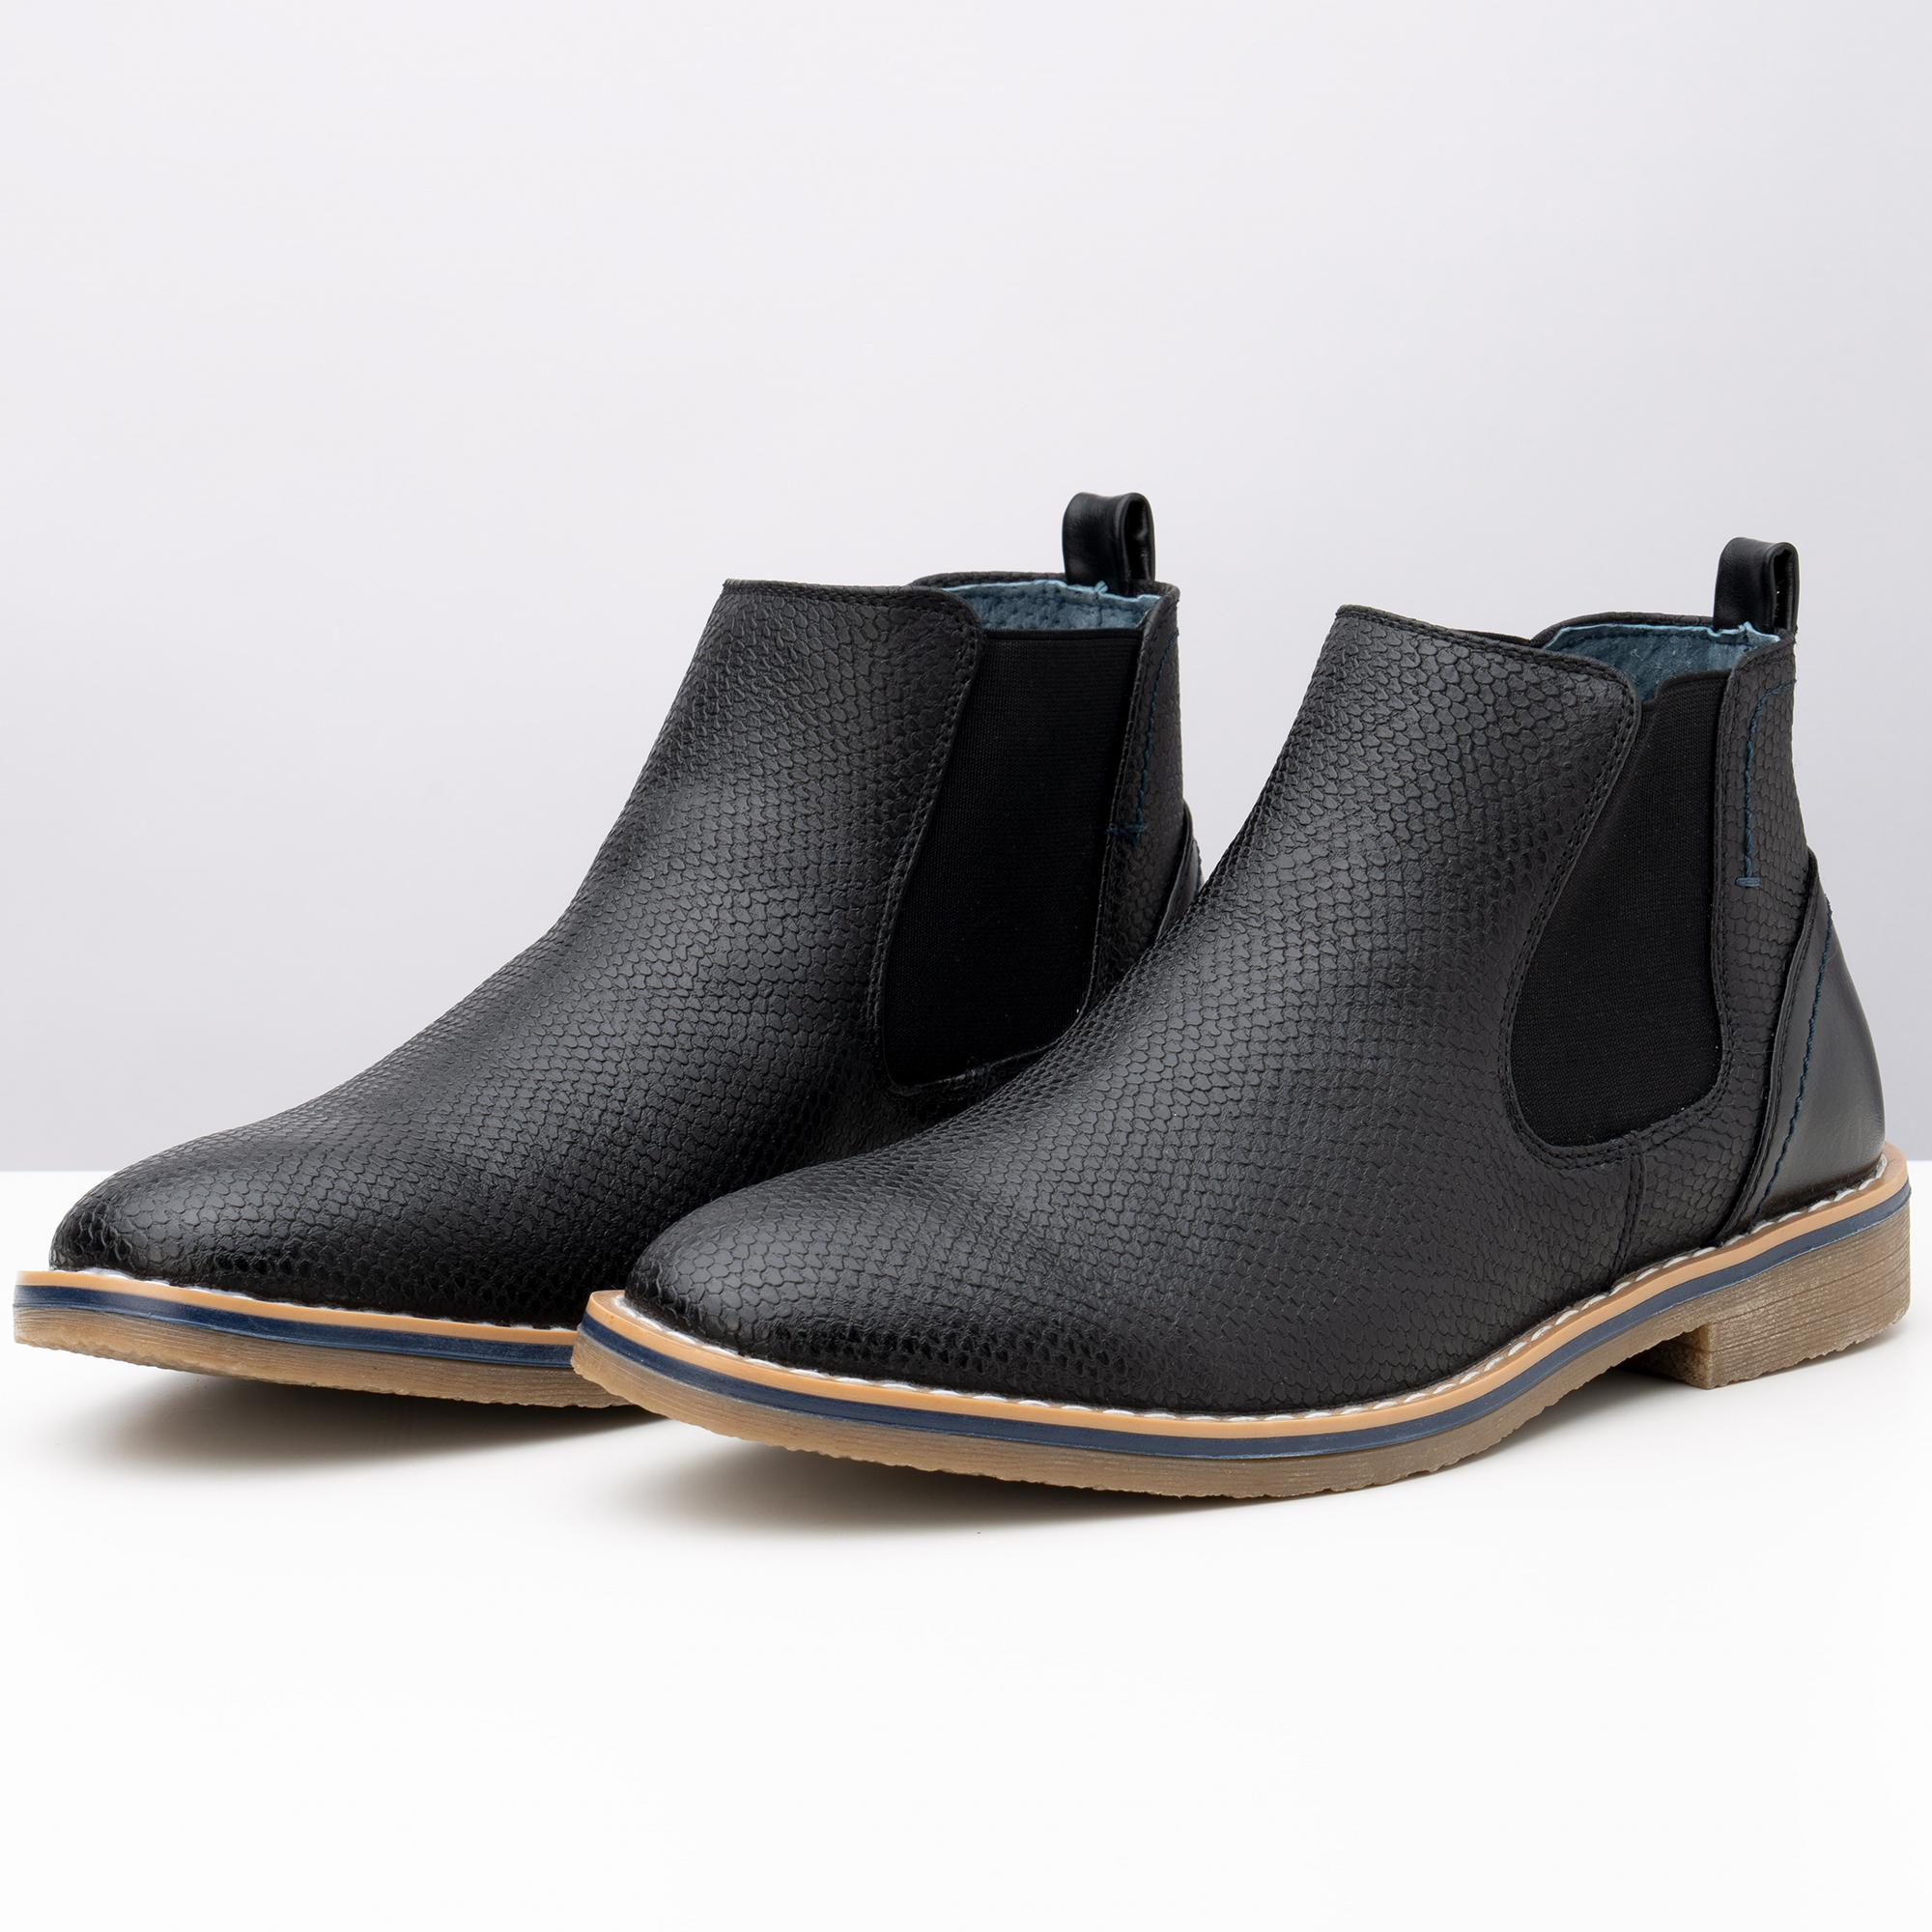 Alpine-Swiss-Mens-Nash-Chelsea-Boots-Snakeskin-Ankle-Boot-Genuine-Leather-Lined miniature 16